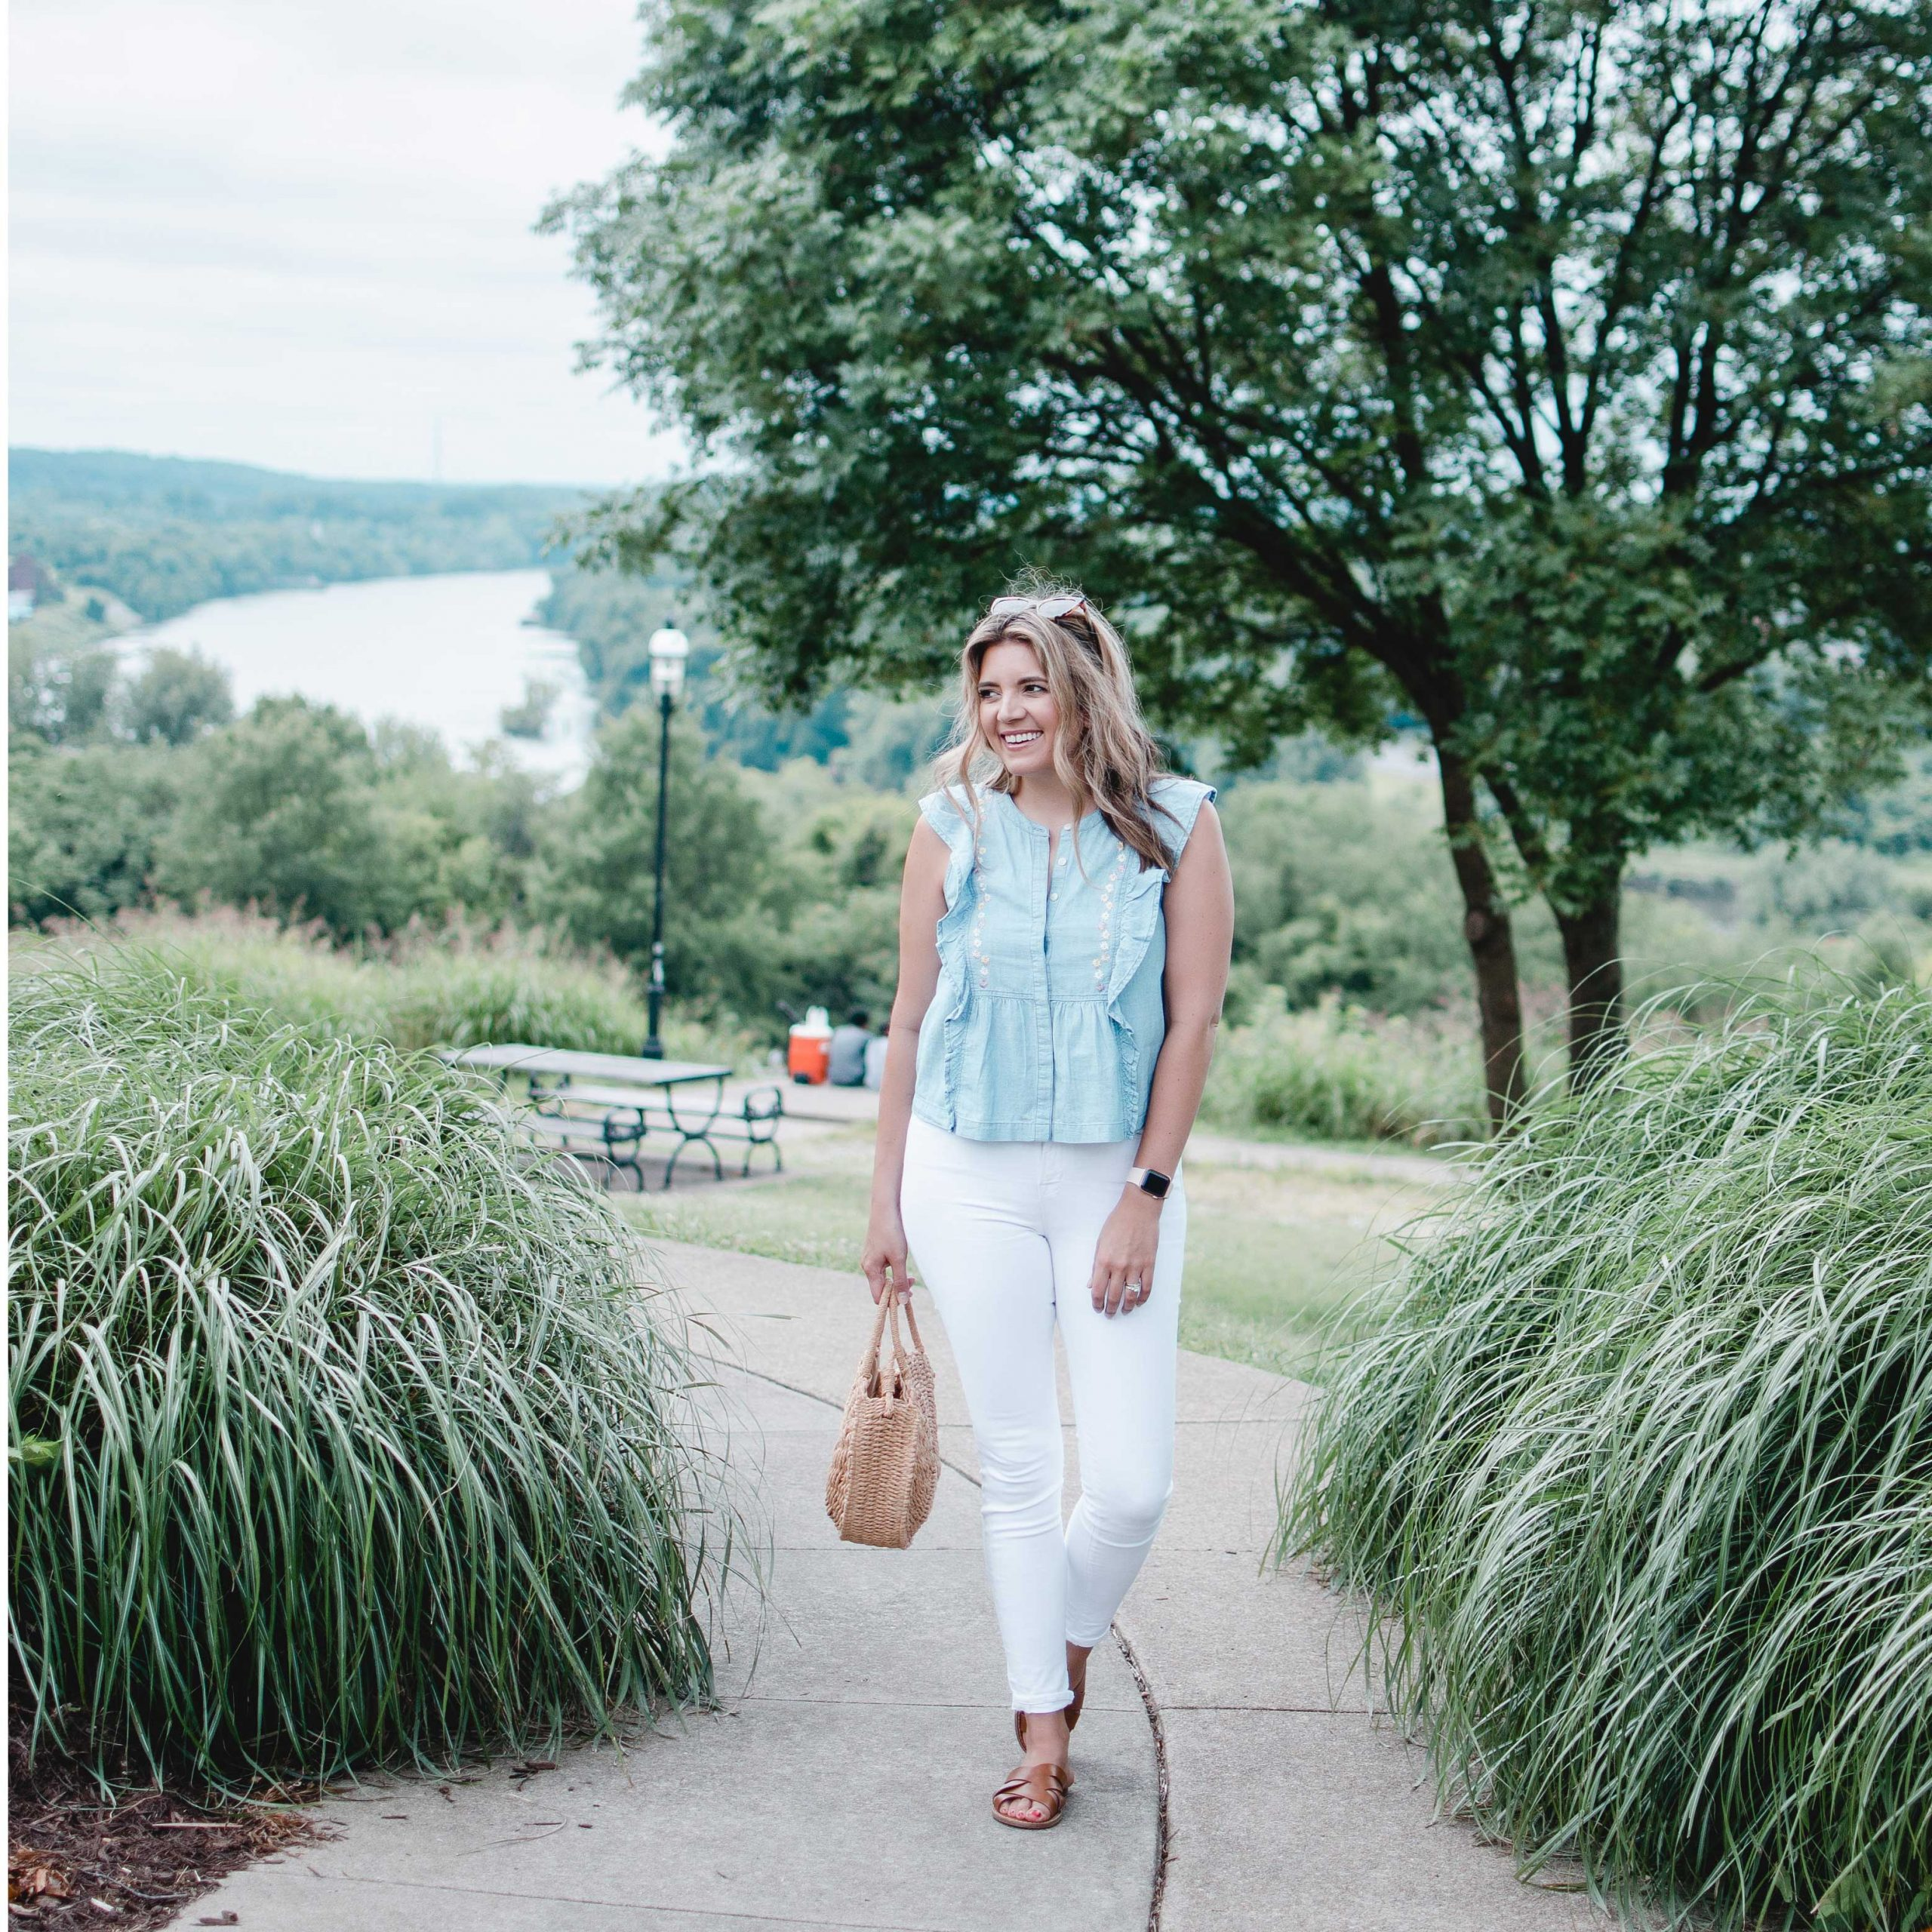 RVA blogger, Lauren Dix, shares all the best Instagram Spots in Richmond, VA! Libby Hill Park is one of the best for RVA city views, James River views, and more!